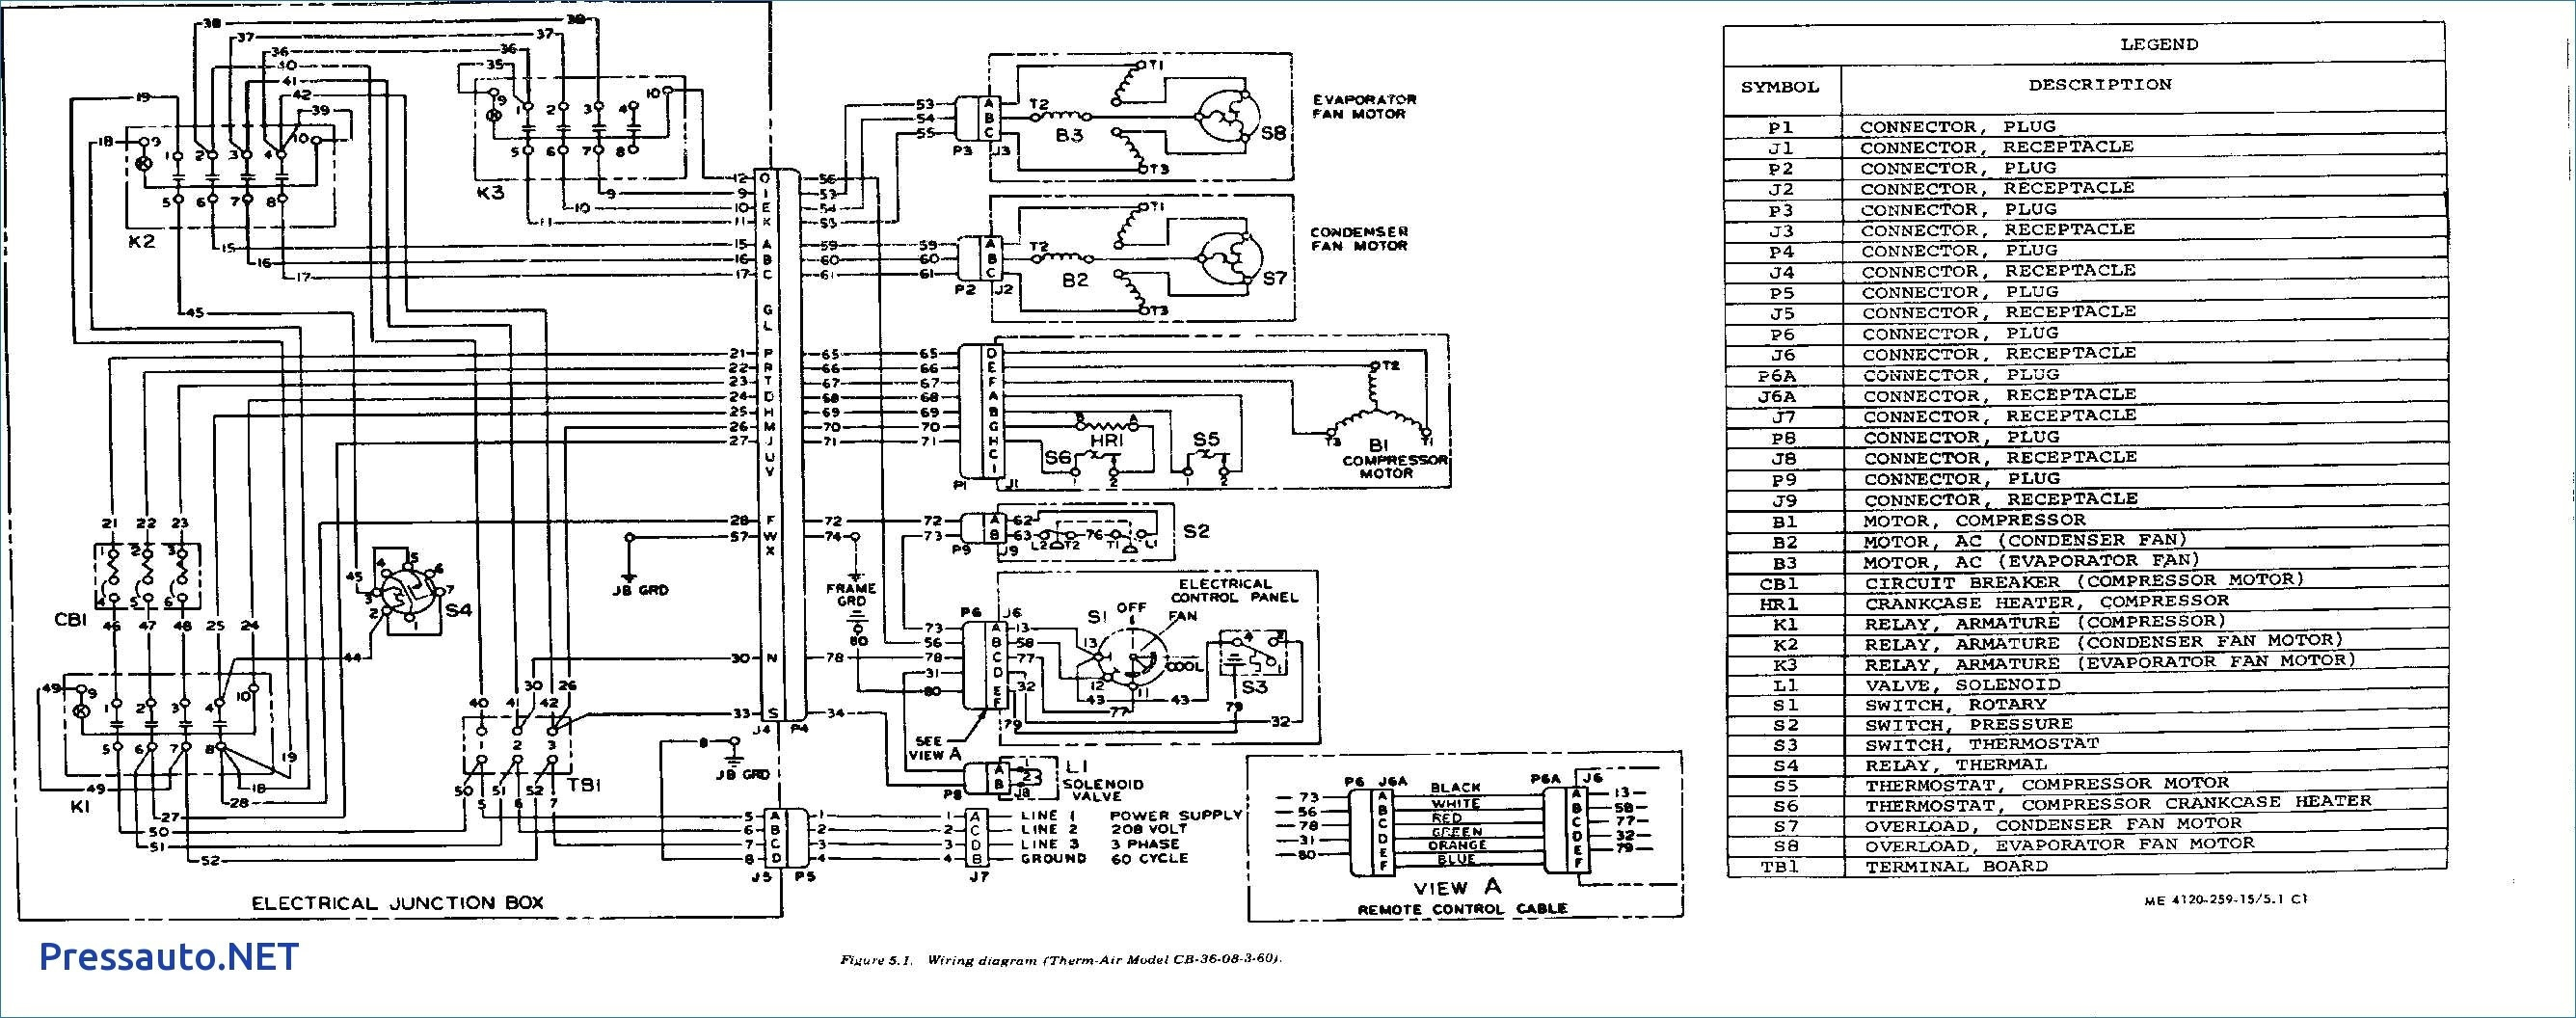 trane rooftop unit wiring diagram Download-trane voyager rooftop ac wiring diagrams wire center u2022 rh flrishfarm co 3 Wire Thermostat Wiring Diagram Honeywell Thermostat Wiring Diagram 7-b